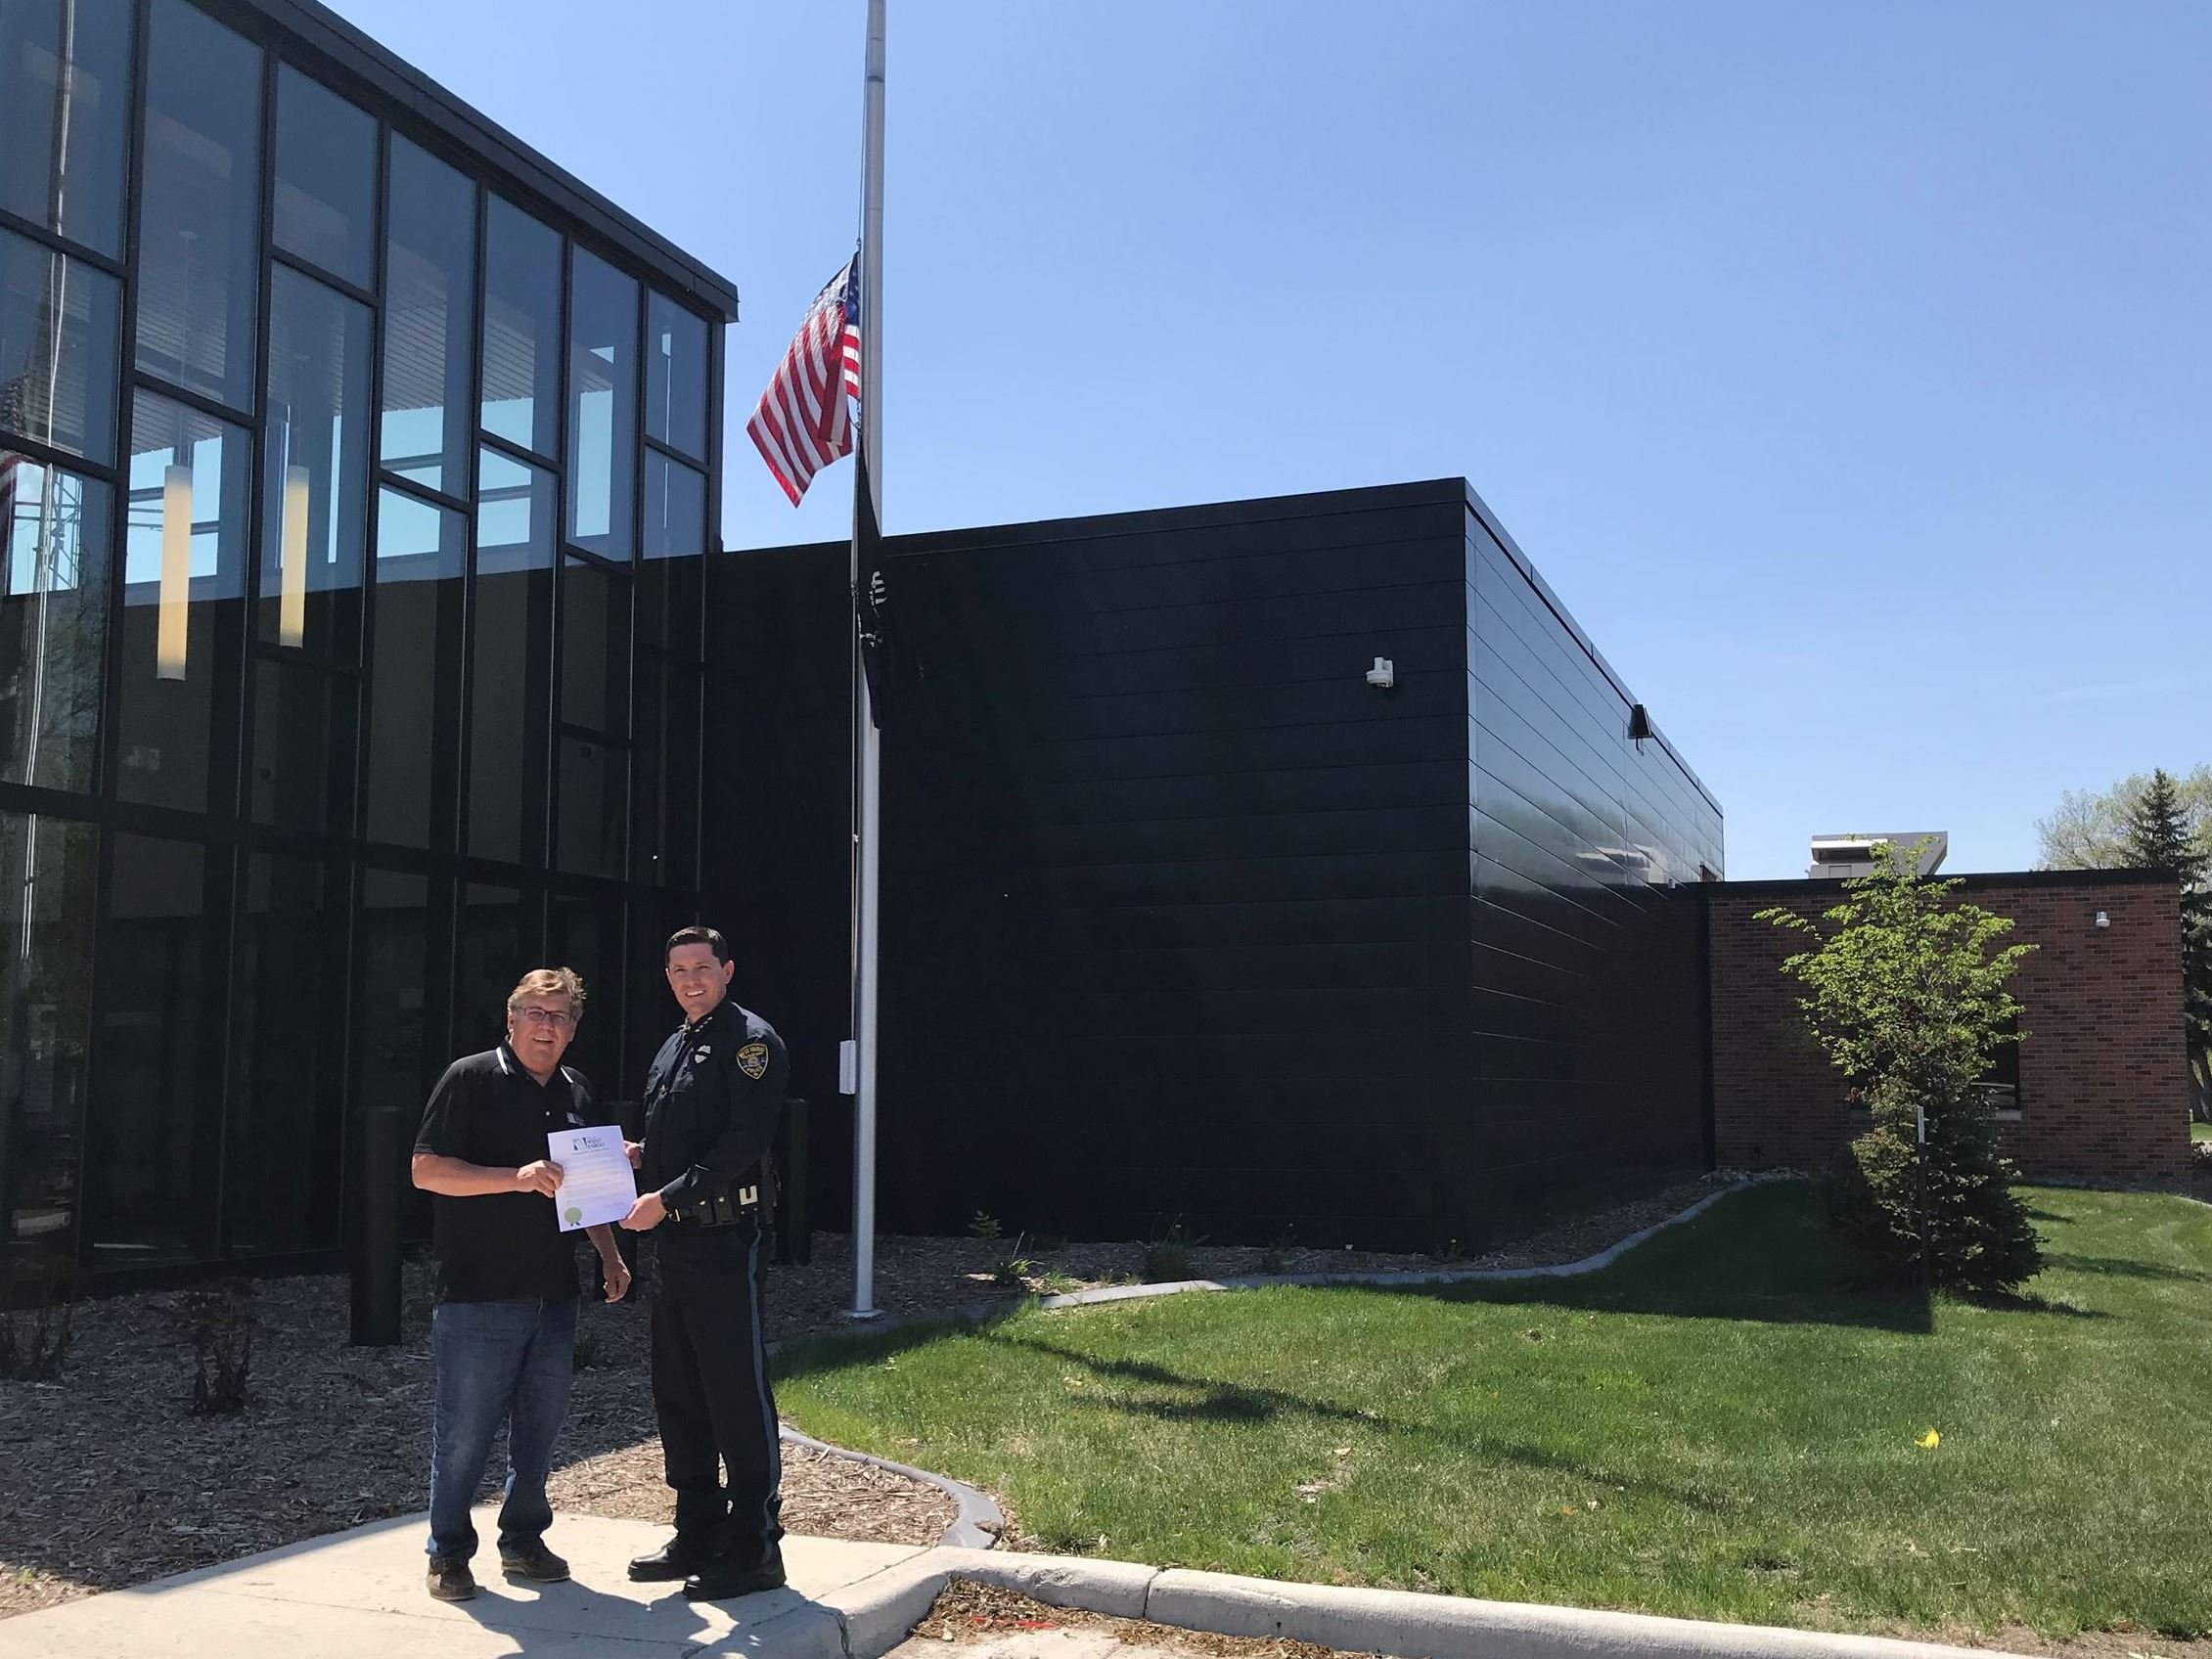 Mayor Mattern and Chief Janke pose in front of flags at half-staff in honor of Police Week in West F